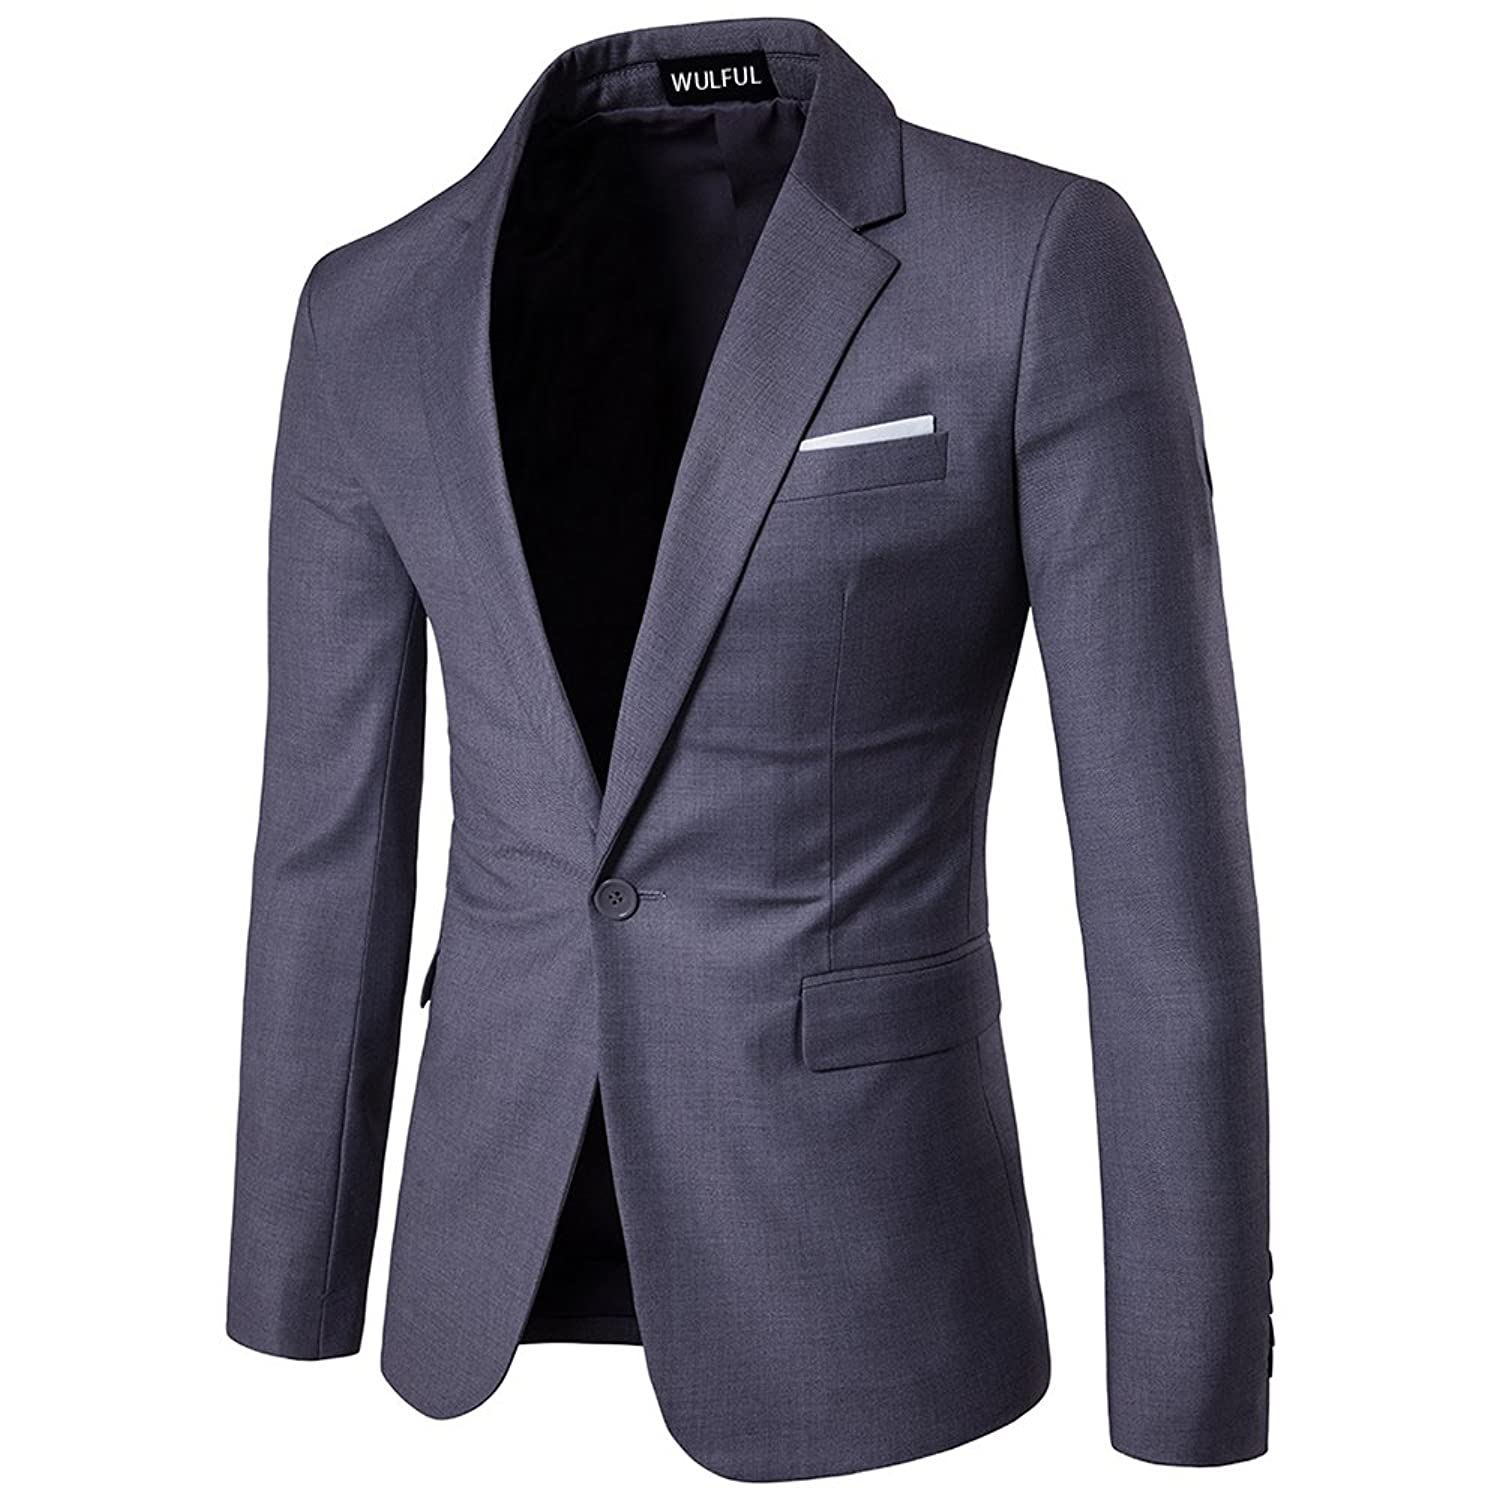 bbb9fc1af7e Material cotton polyester blended ,The blazers Will Be Comfortable